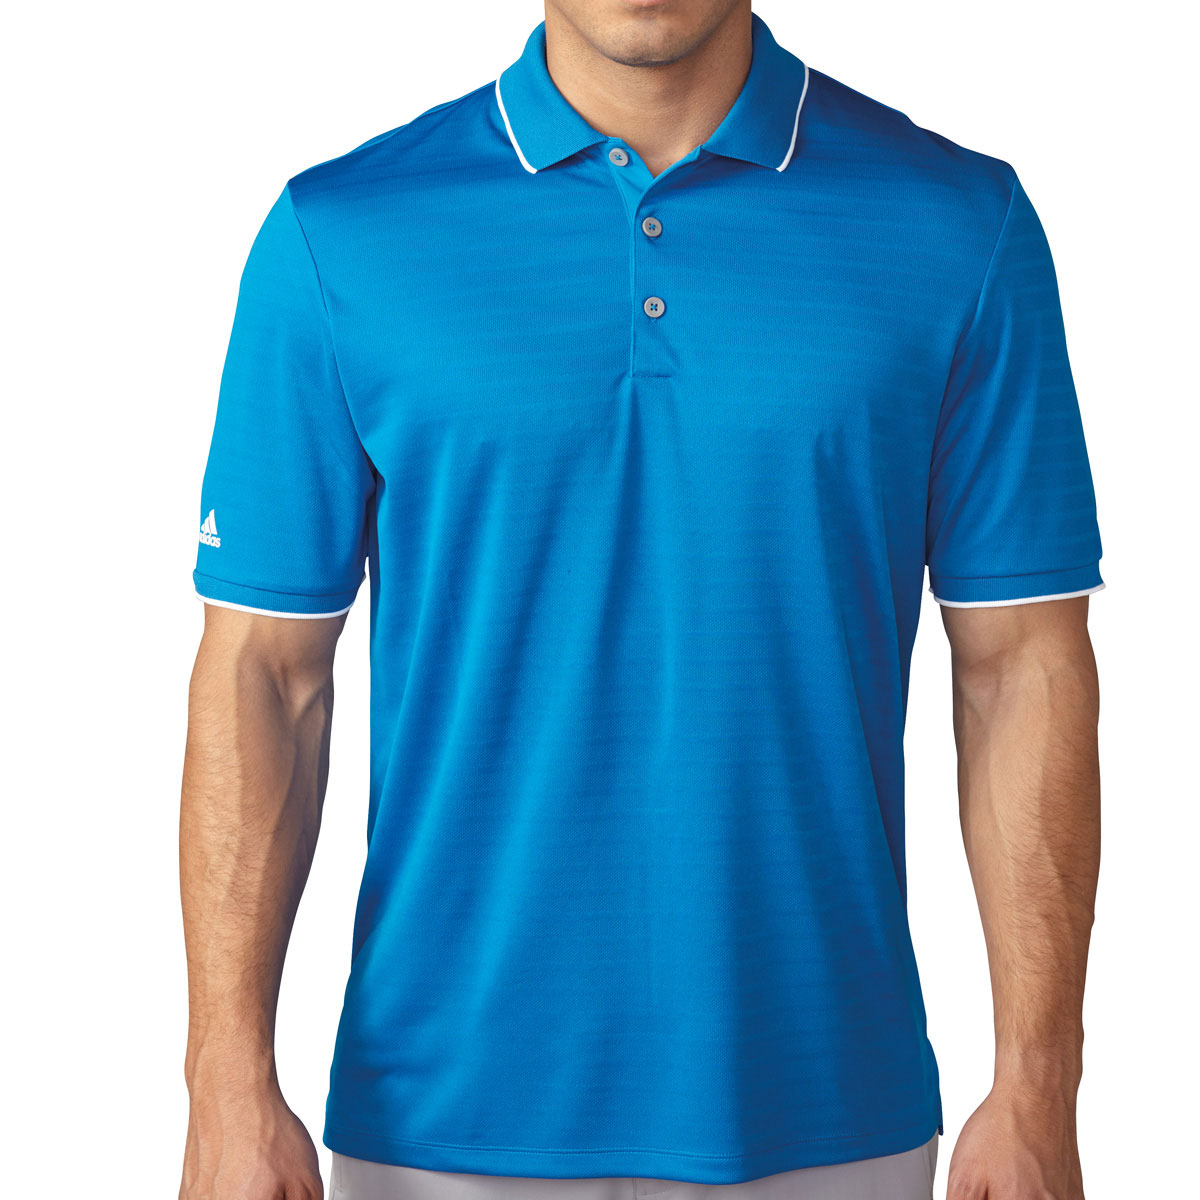 Adidas golf 2016 mens climacool tipped club performance for Polo golf shirts for men